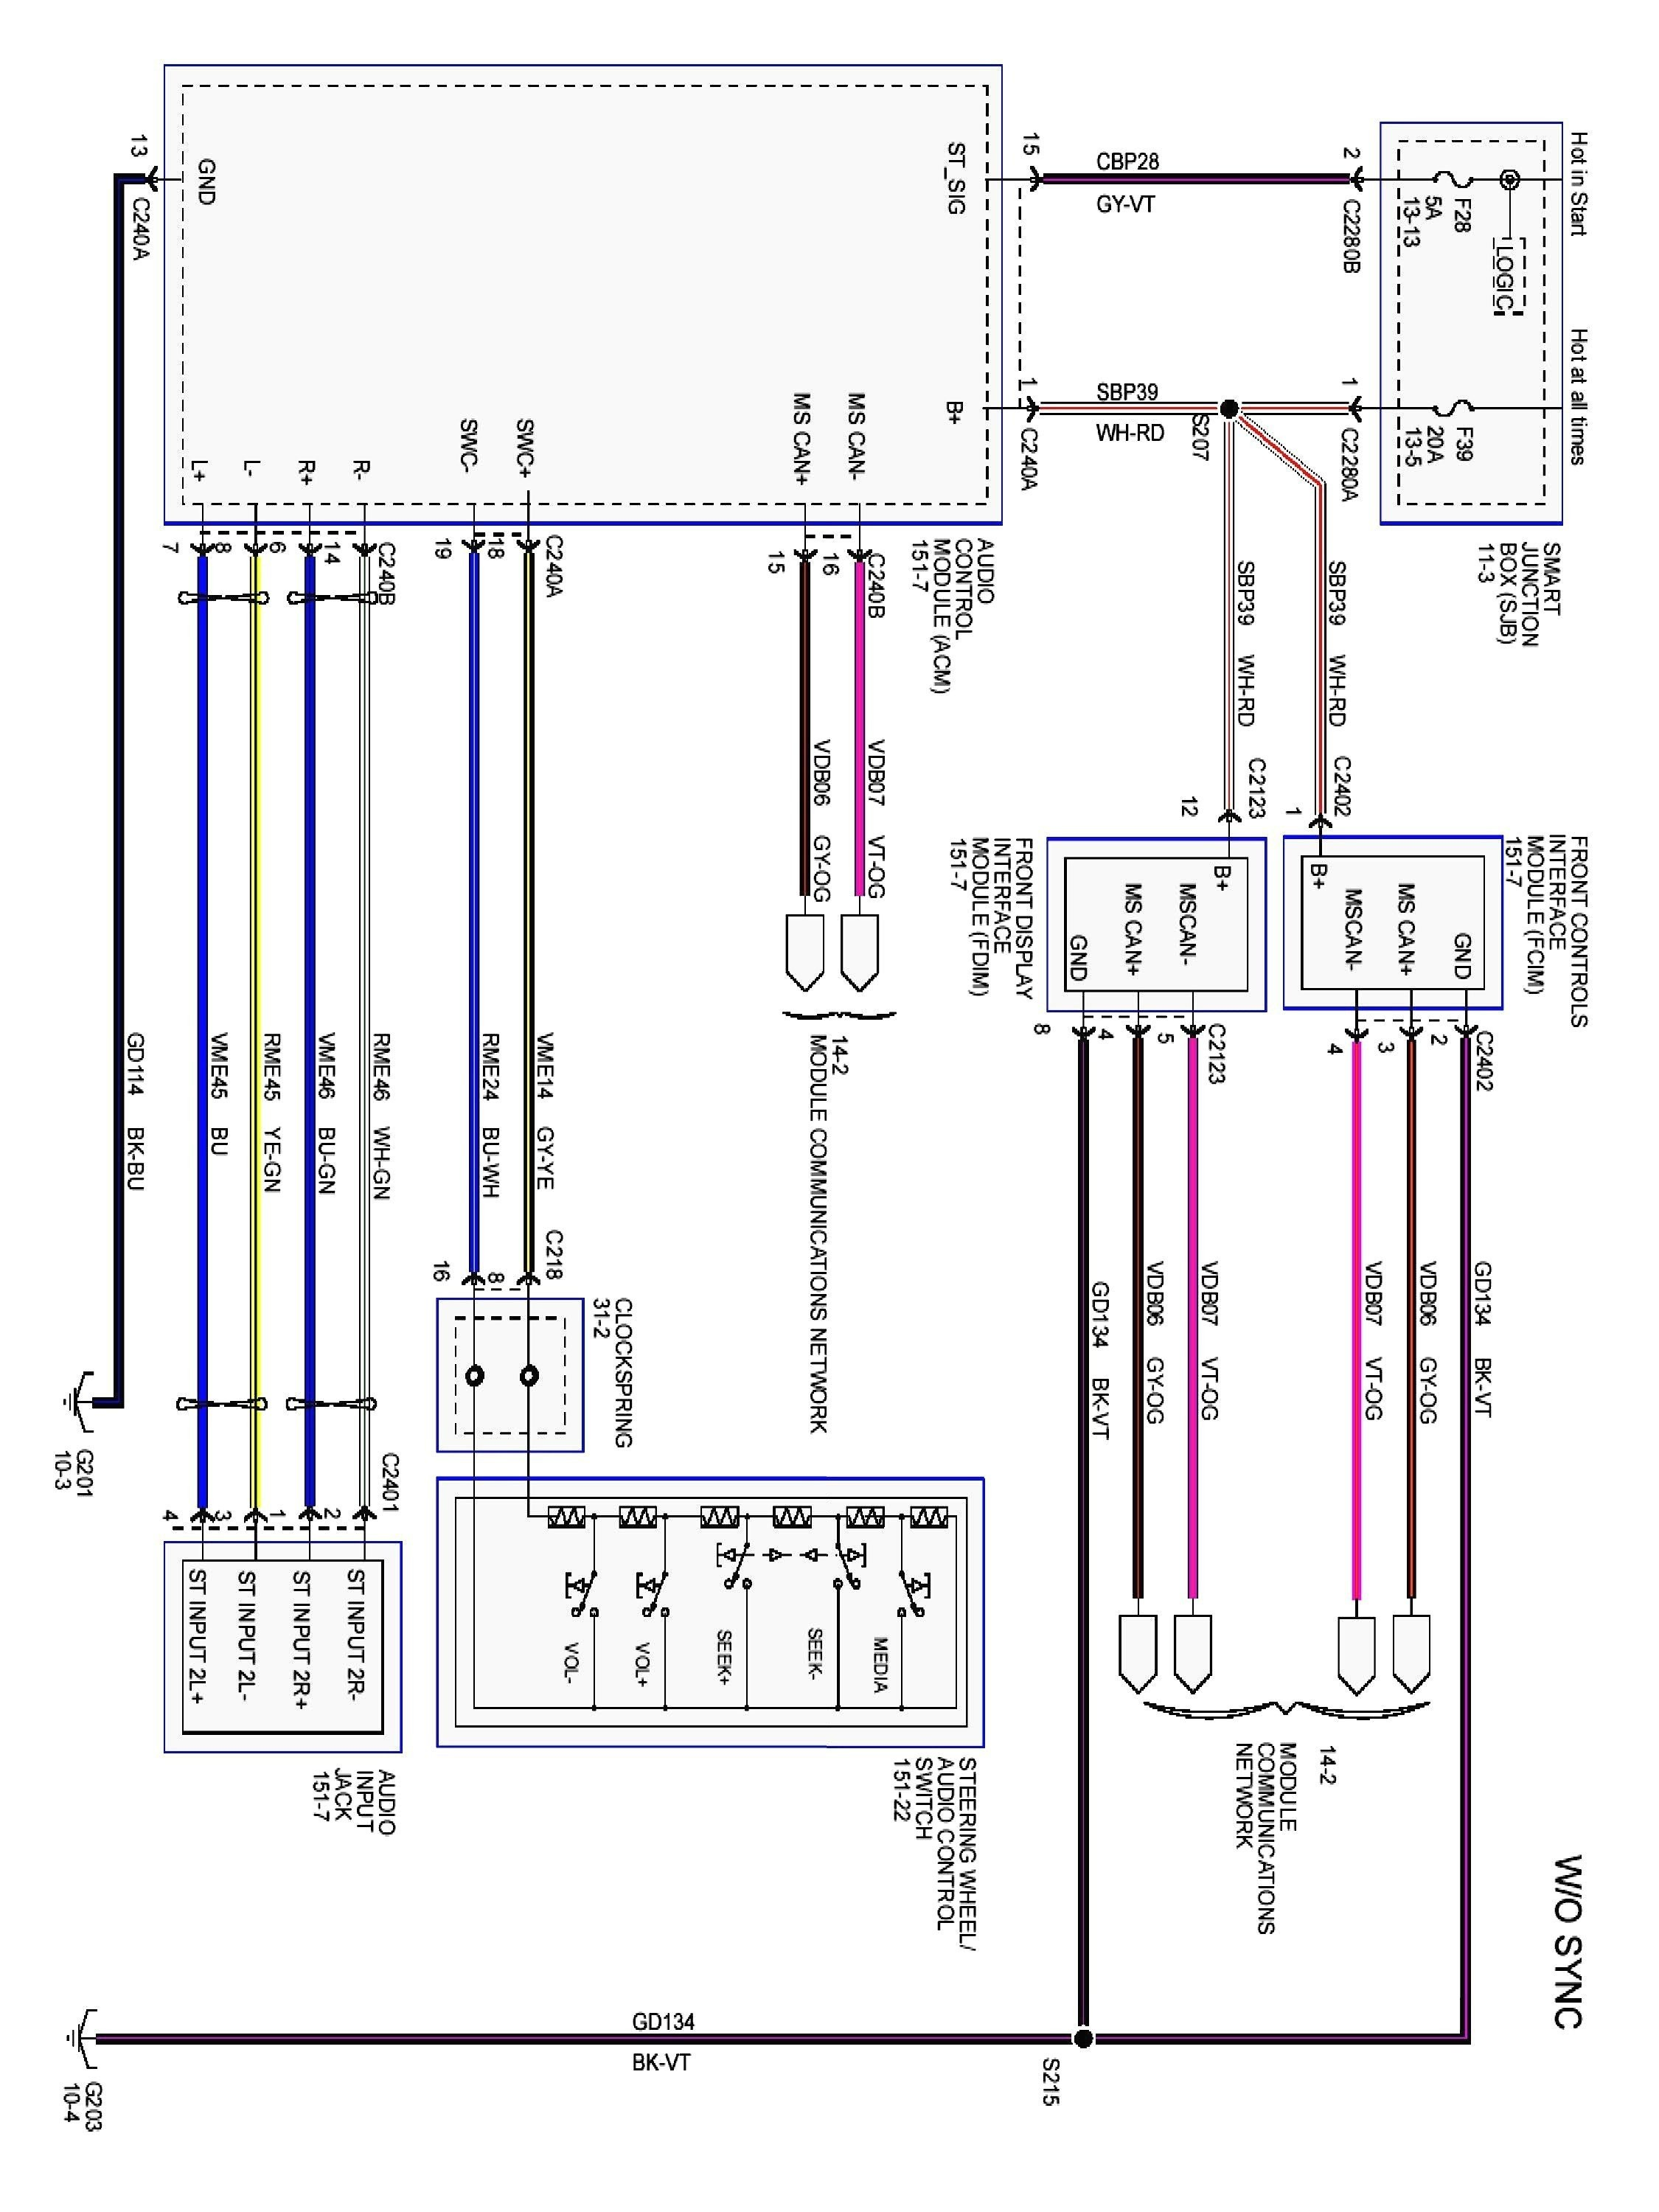 VL_1854] 2007 Ford Fusion Radio Wiring Harness Download DiagramPeted Awni Eopsy Peted Oidei Vira Mohammedshrine Librar Wiring 101